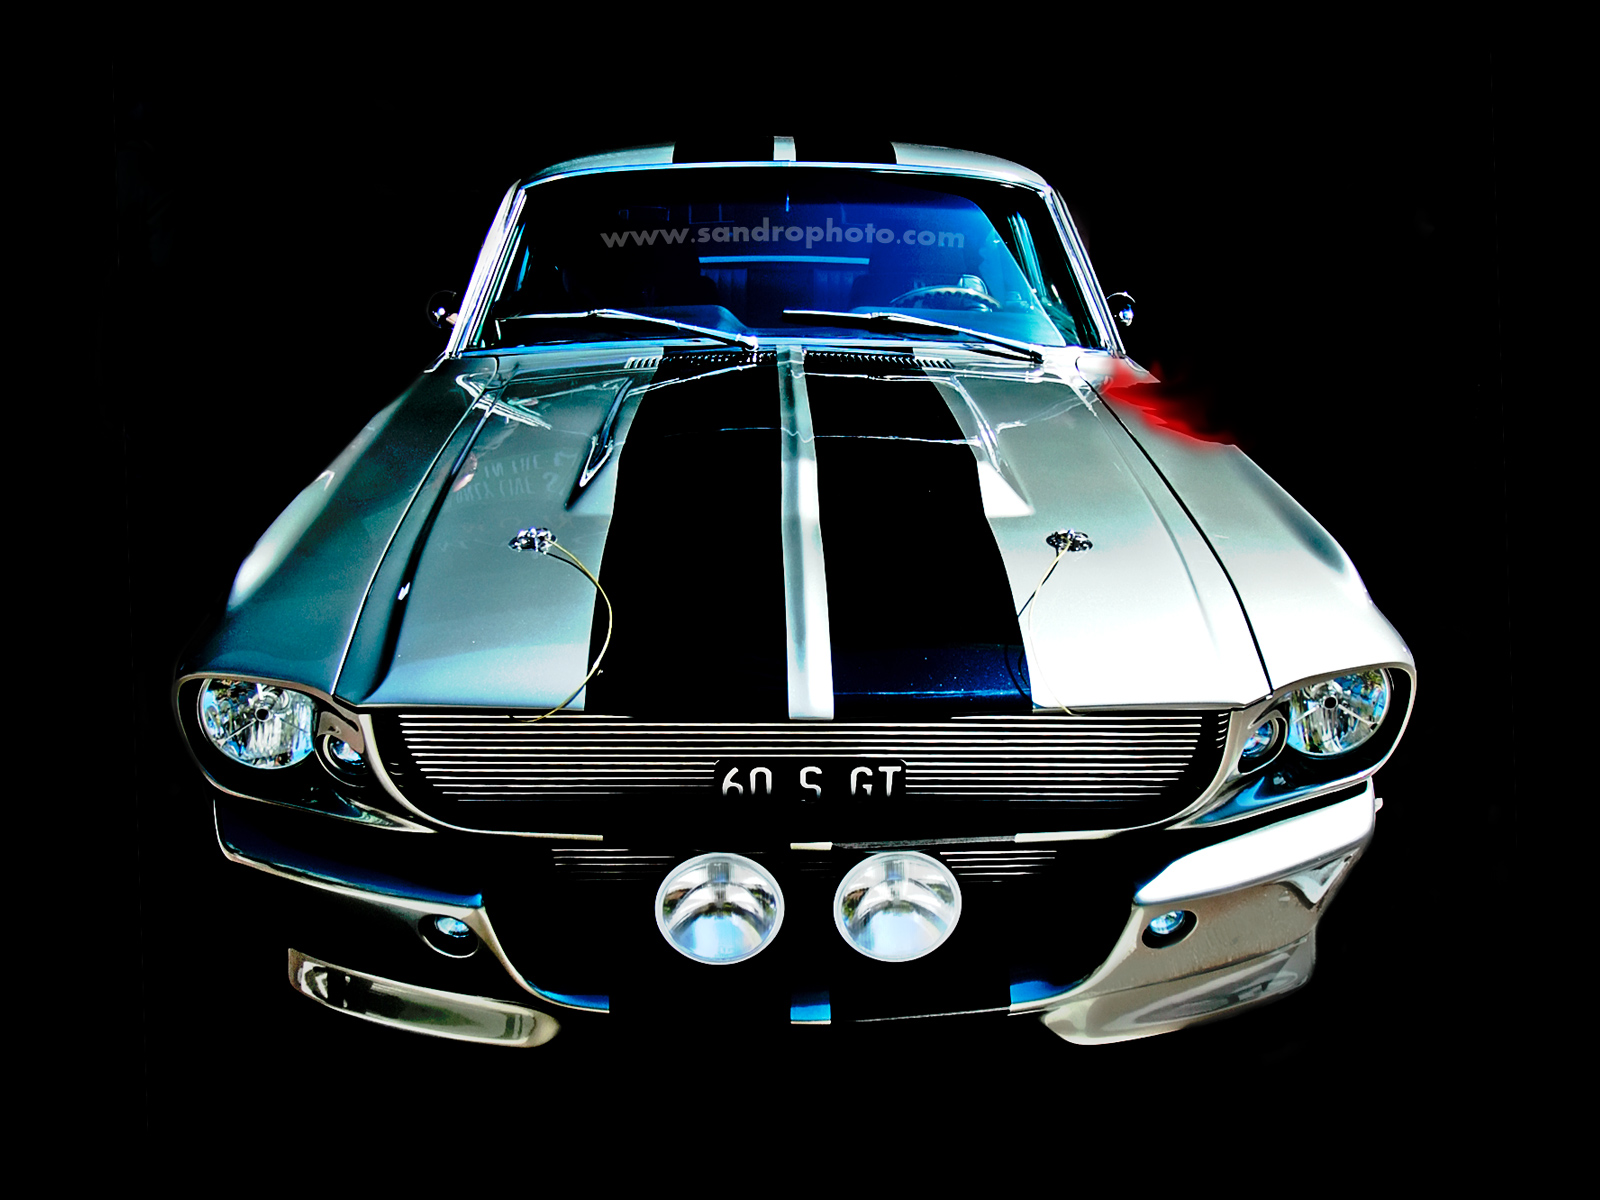 Hd-Car Wallpapers: Muscle Car Wallpapers For Desktop